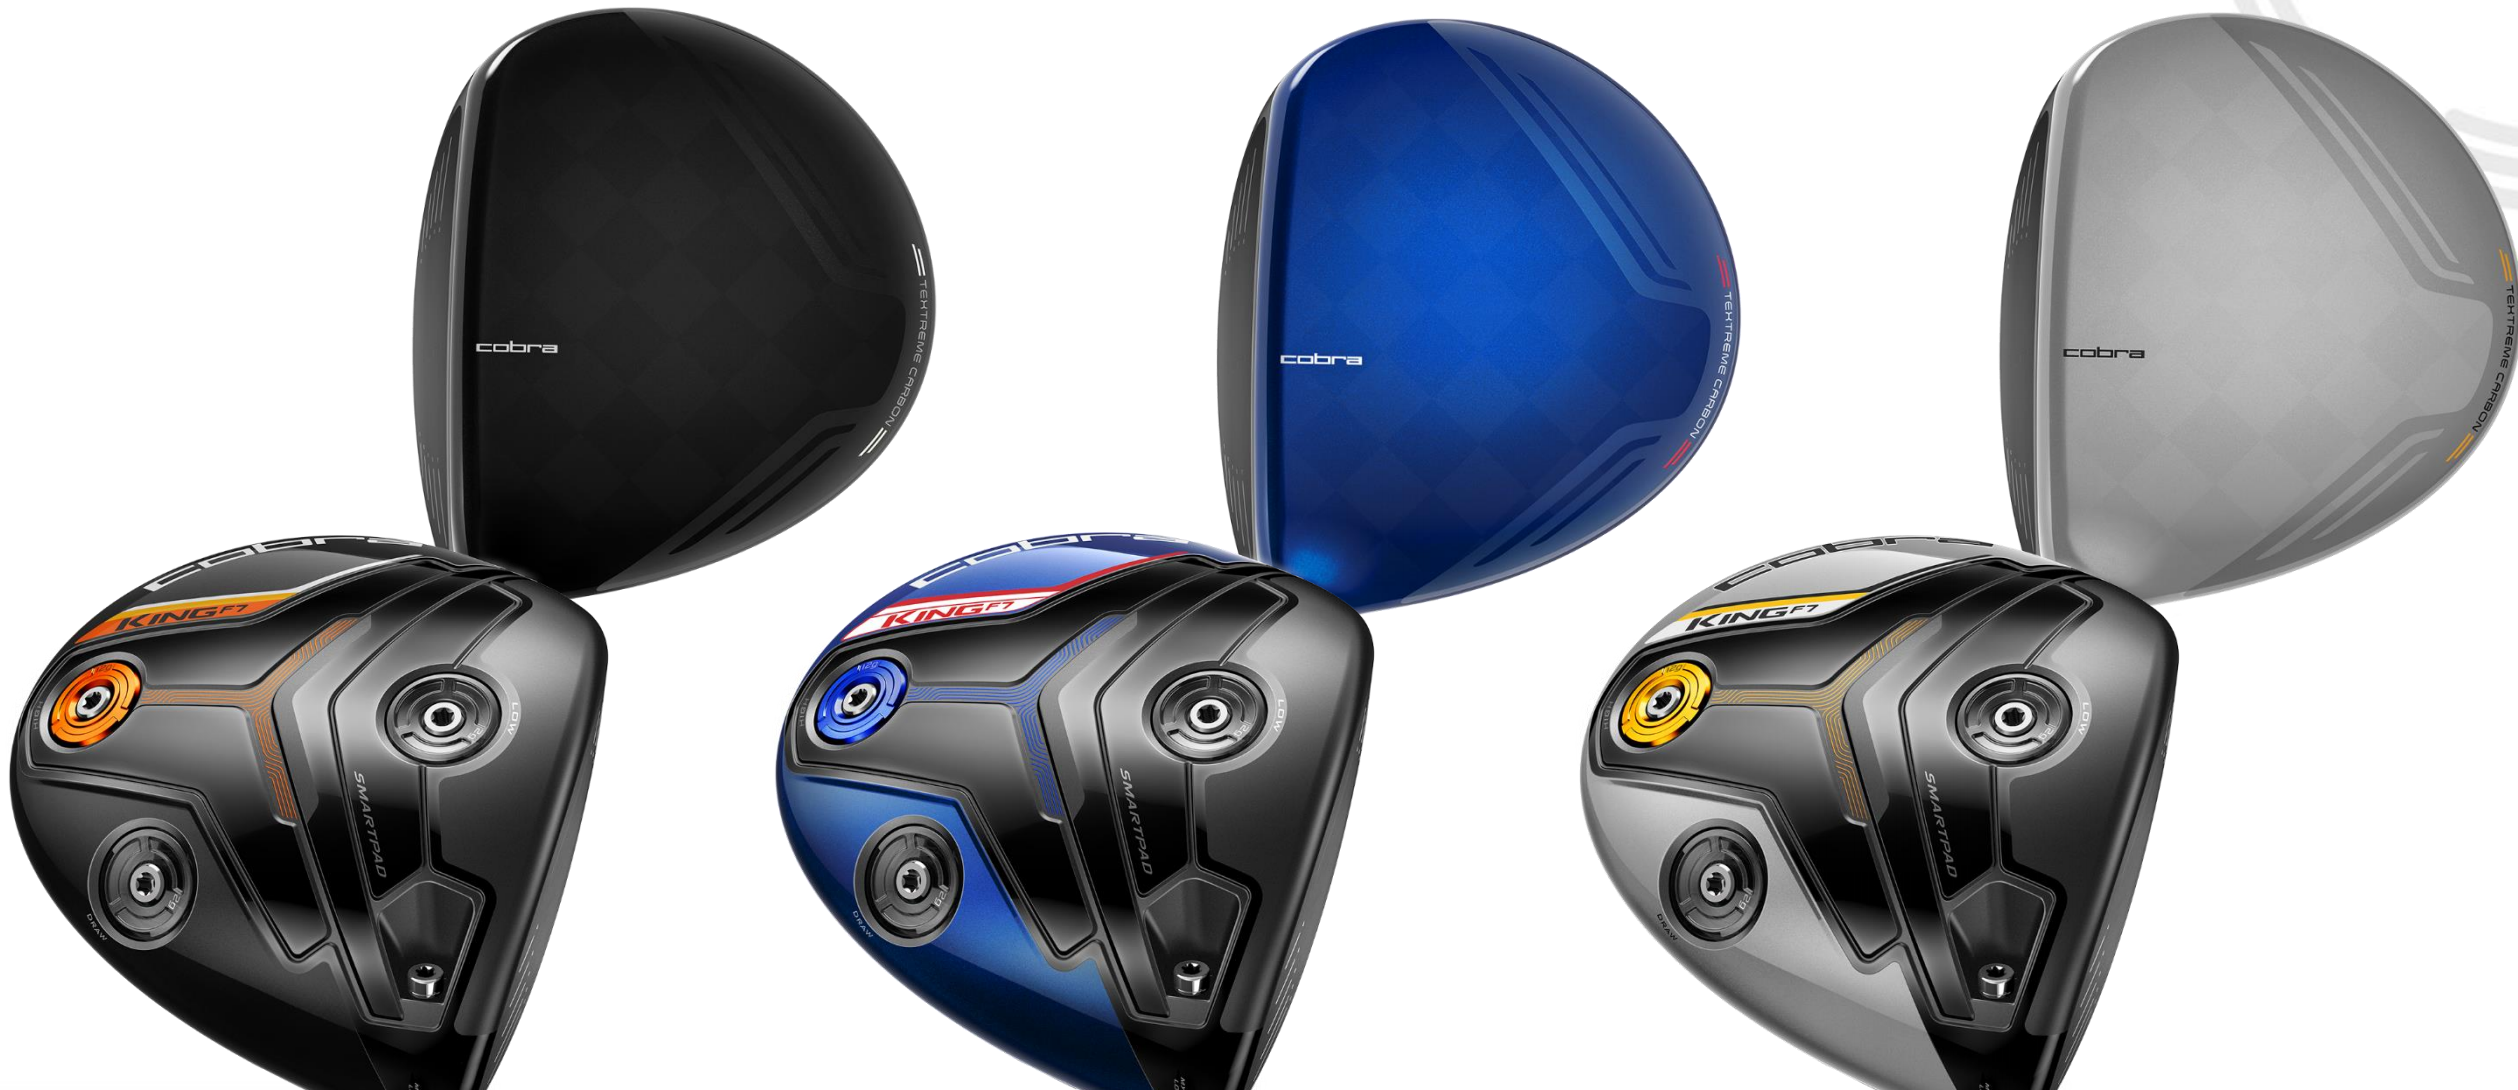 Cobra S King F7 And F7 Drivers Fairways And Hybrids